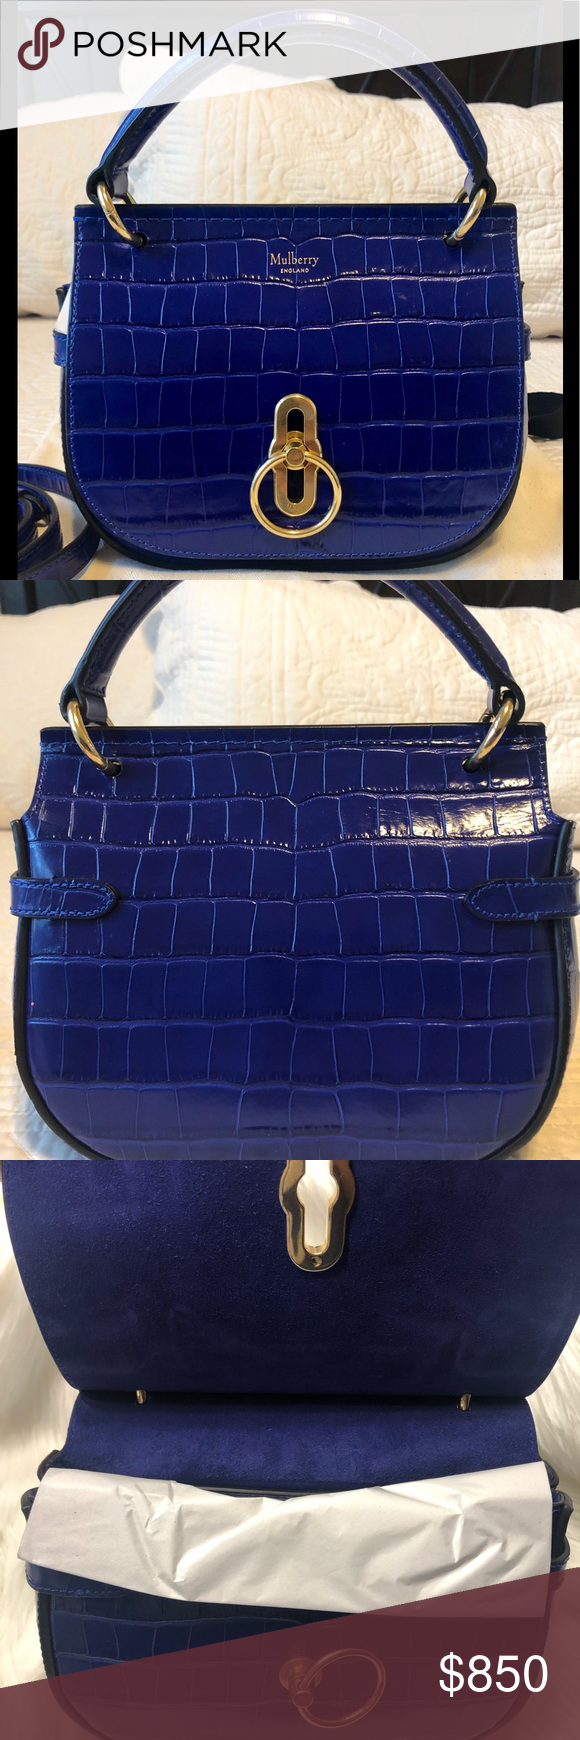 Mulberry Small Amberley Satchel This beautiful cobalt blue, croc print satchel was purchased for my daughter. The bag was too small for her needs and went unused. The bag converts from satchel to crossbody. The bag is in new condition,...please see last pic for details. Comes with tag, care book and dust bag. Mulberry Bags Crossbody Bags #mulberrybag Mulberry Small Amberley Satchel This beautiful cobalt blue, croc print satchel was purchased for my daughter. The bag was too small for her needs a #mulberrybag